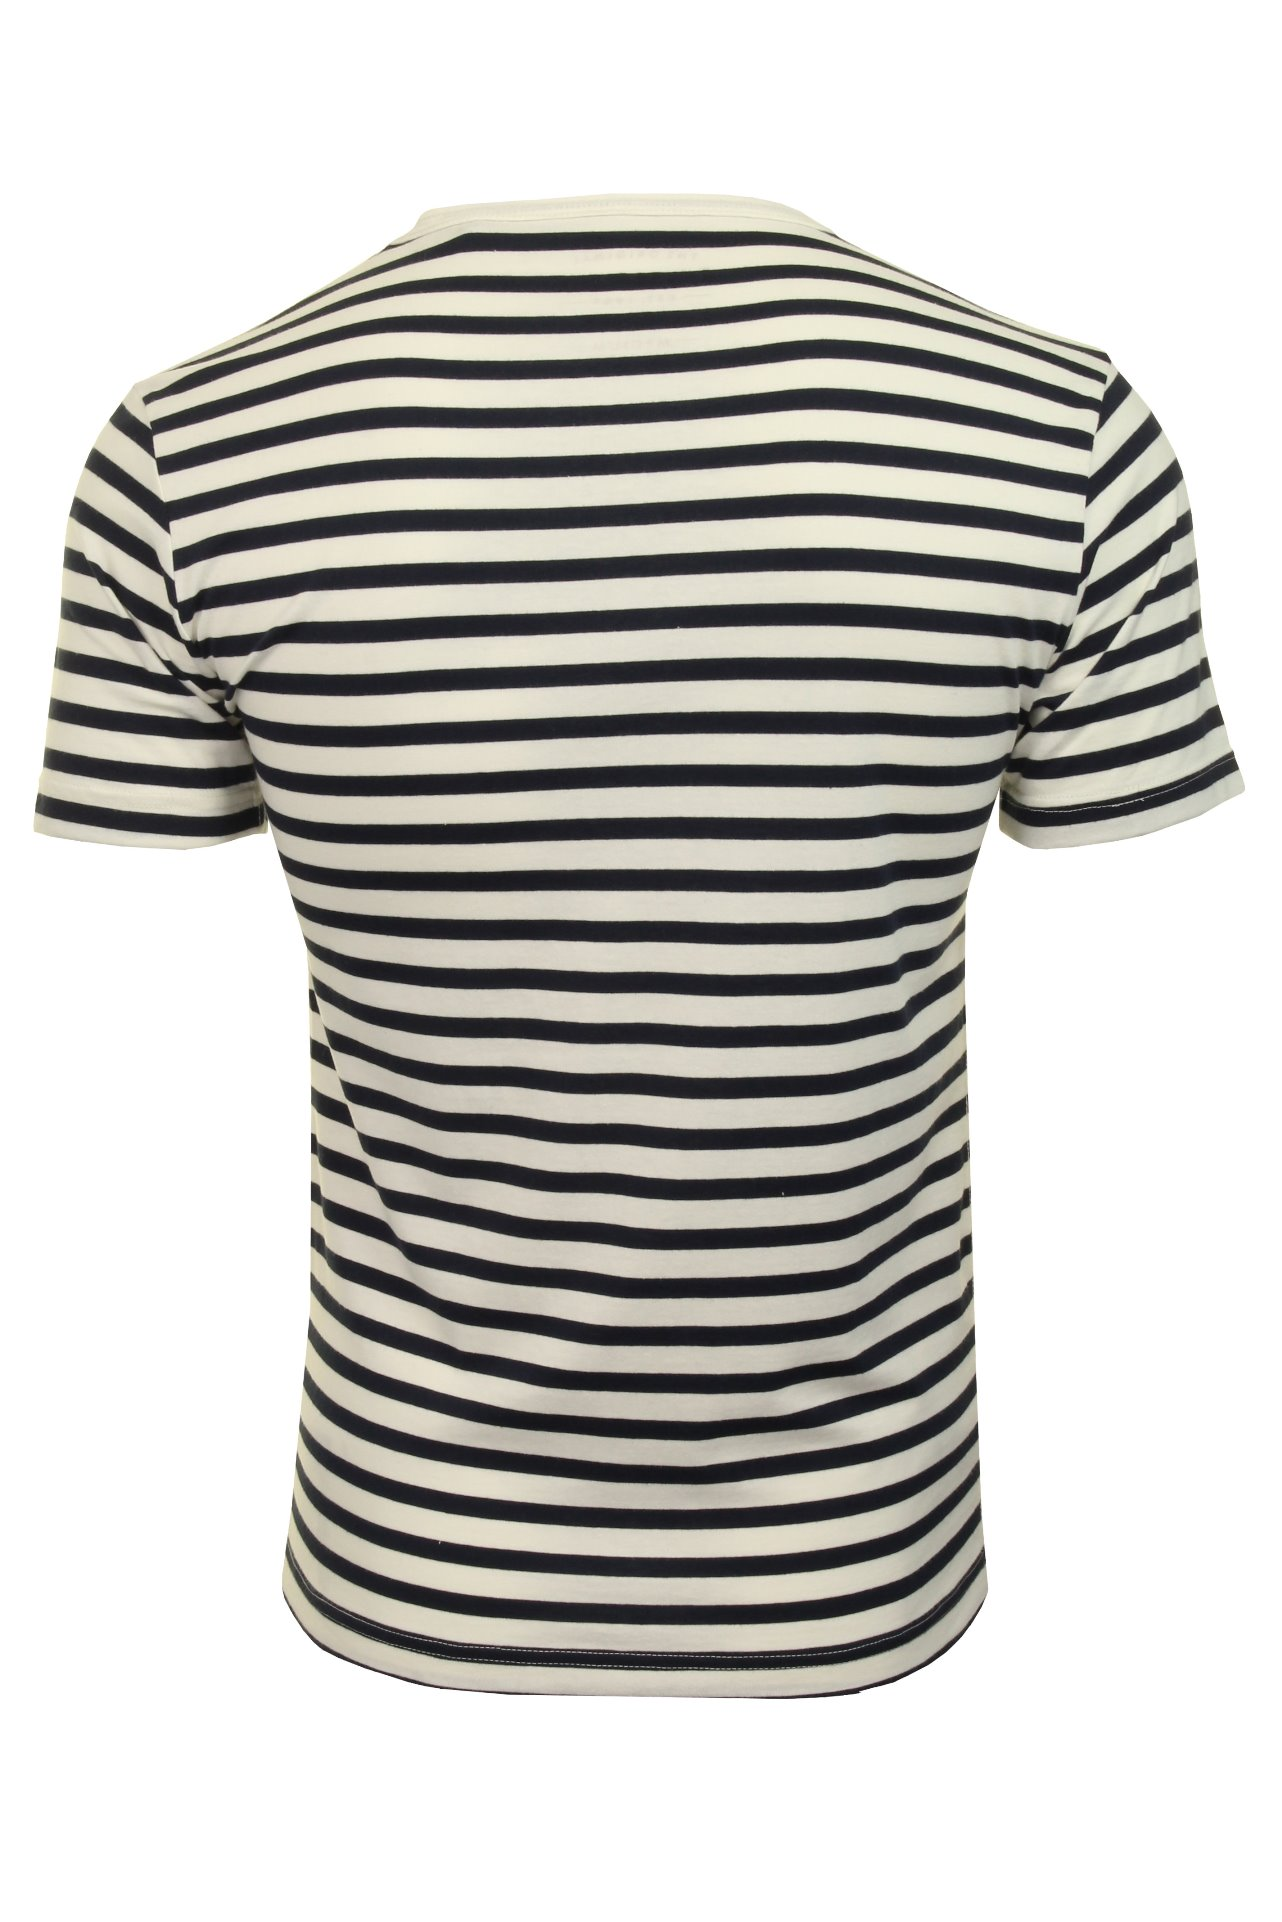 Joules Mens Crew Neck Stripe T-Shirt /'Boathouse Tee/' Short Sleeved